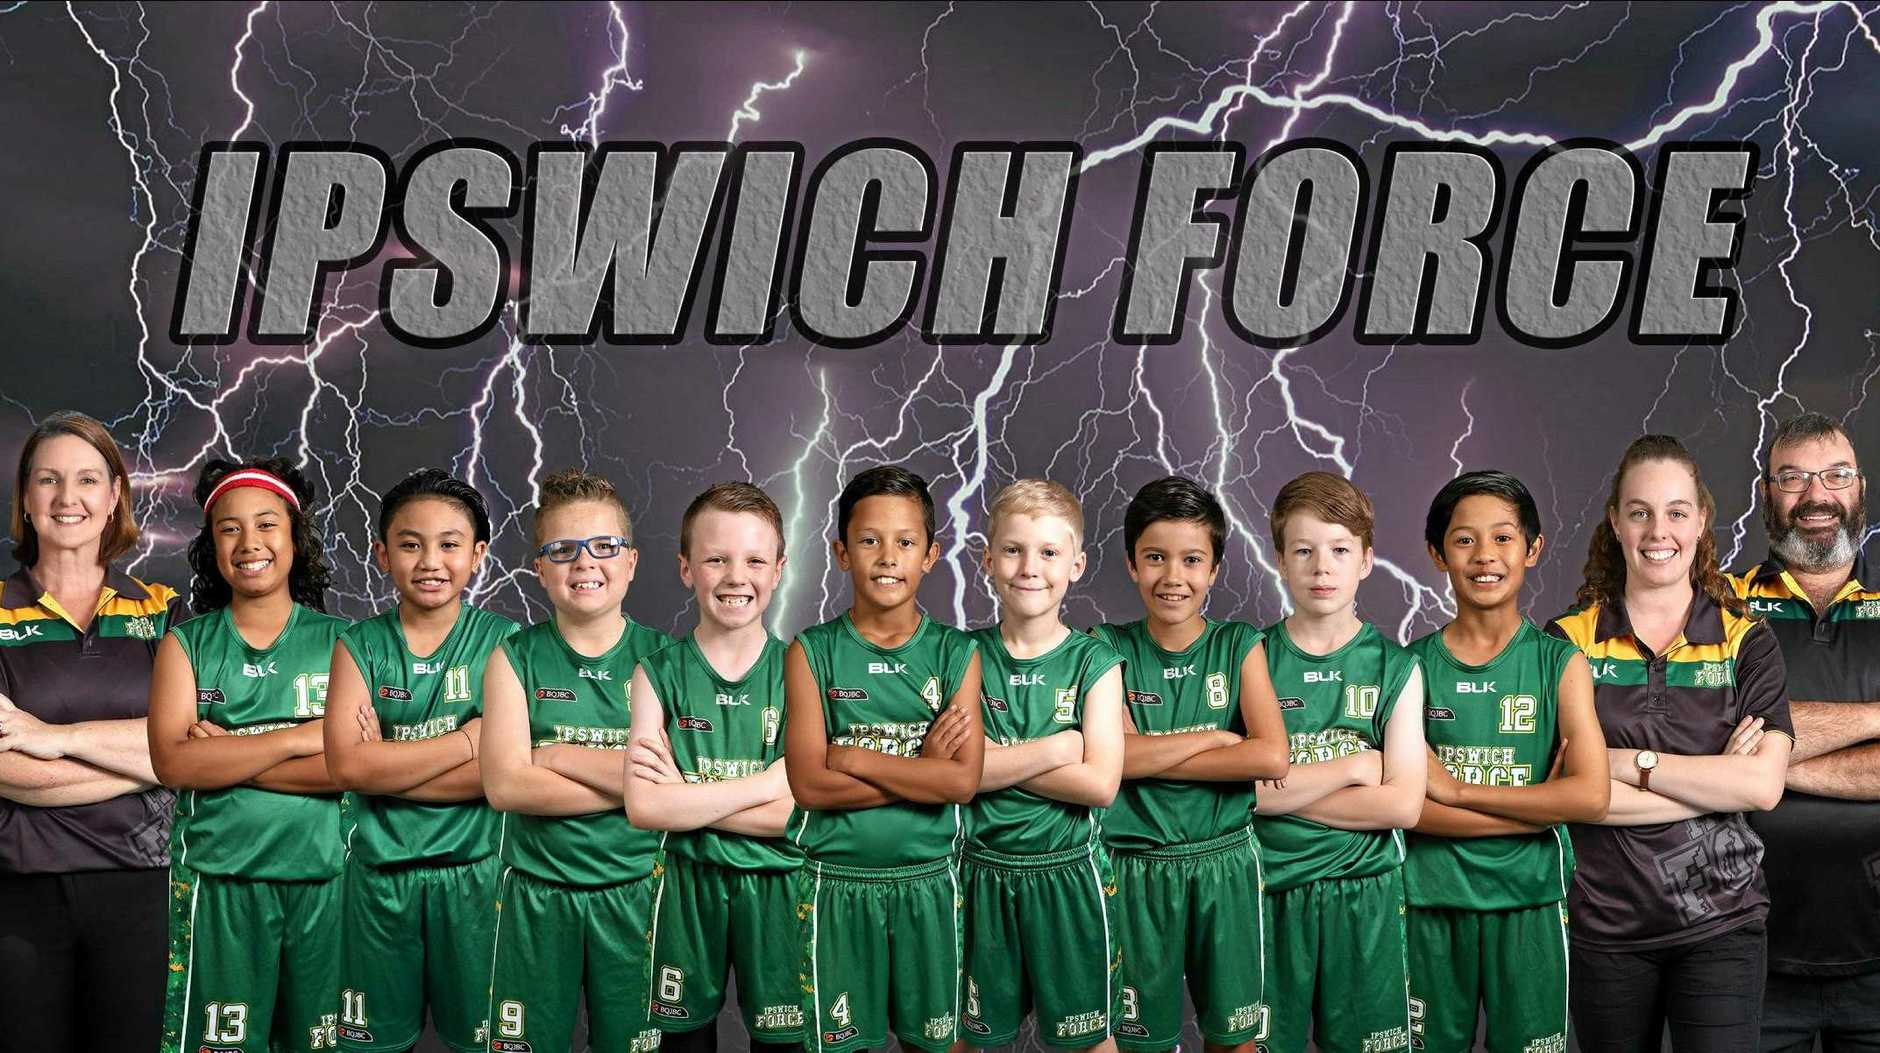 The Ipswich Force under-12 Division 2 basketball team.